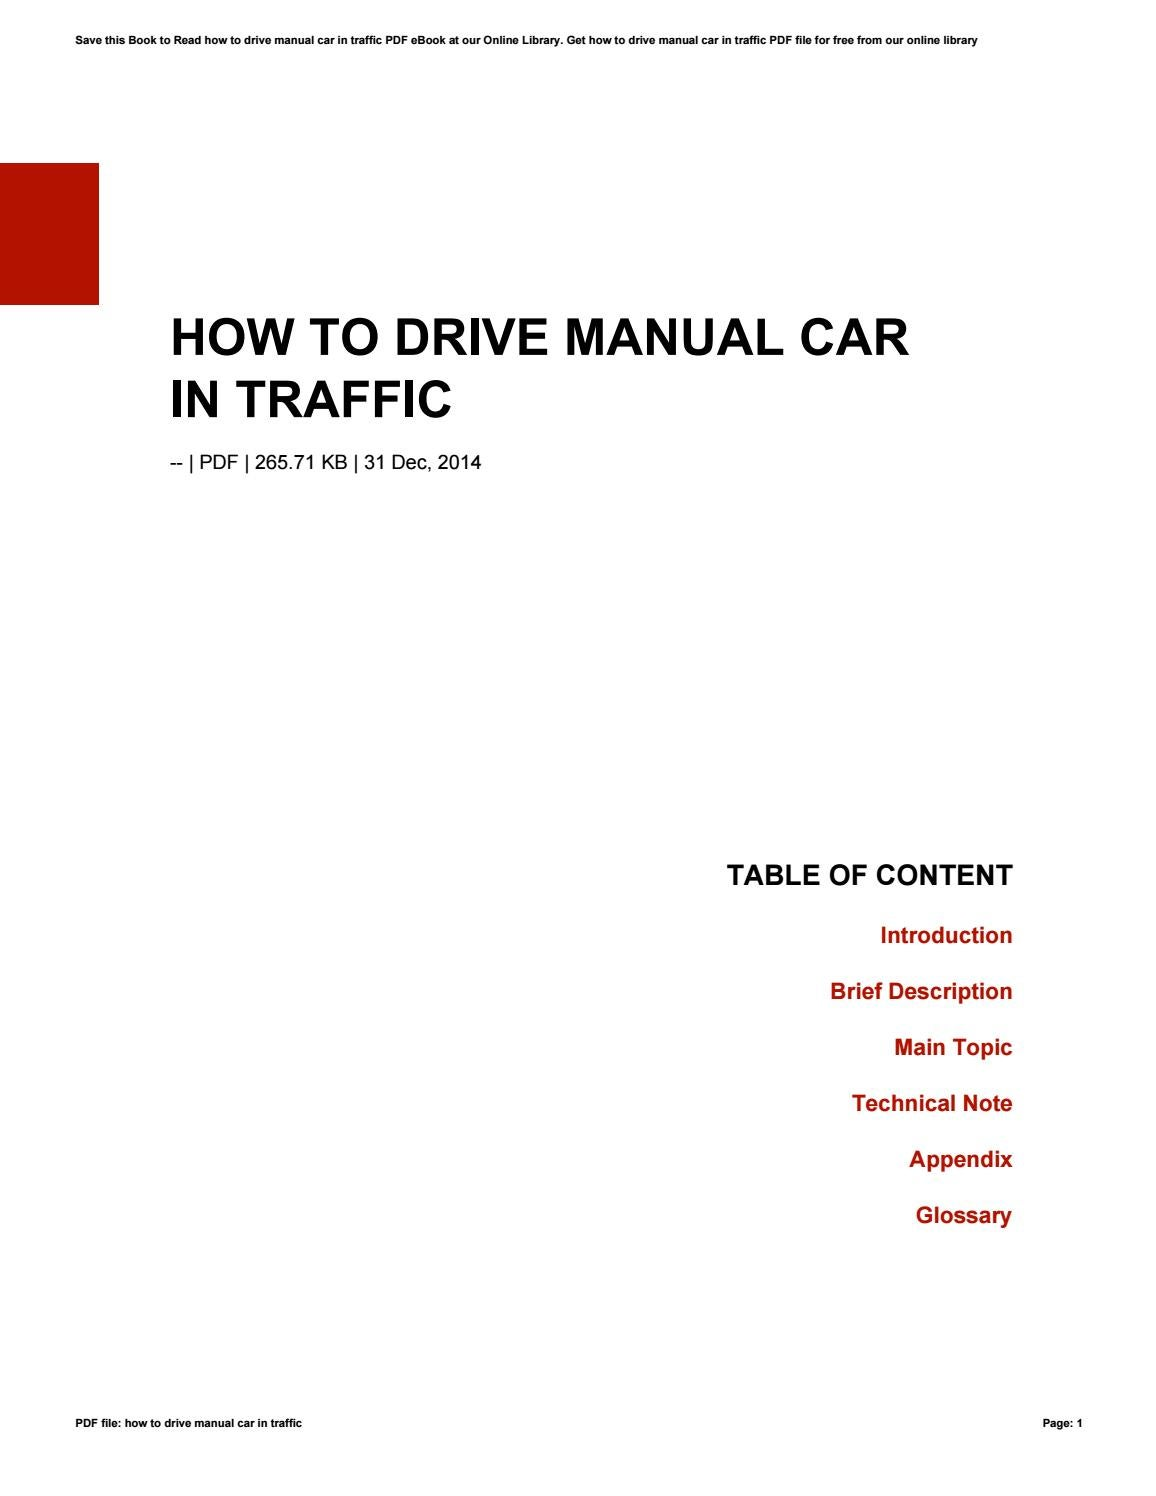 How to drive manual car in traffic by LonnieWilson4018 - issuu